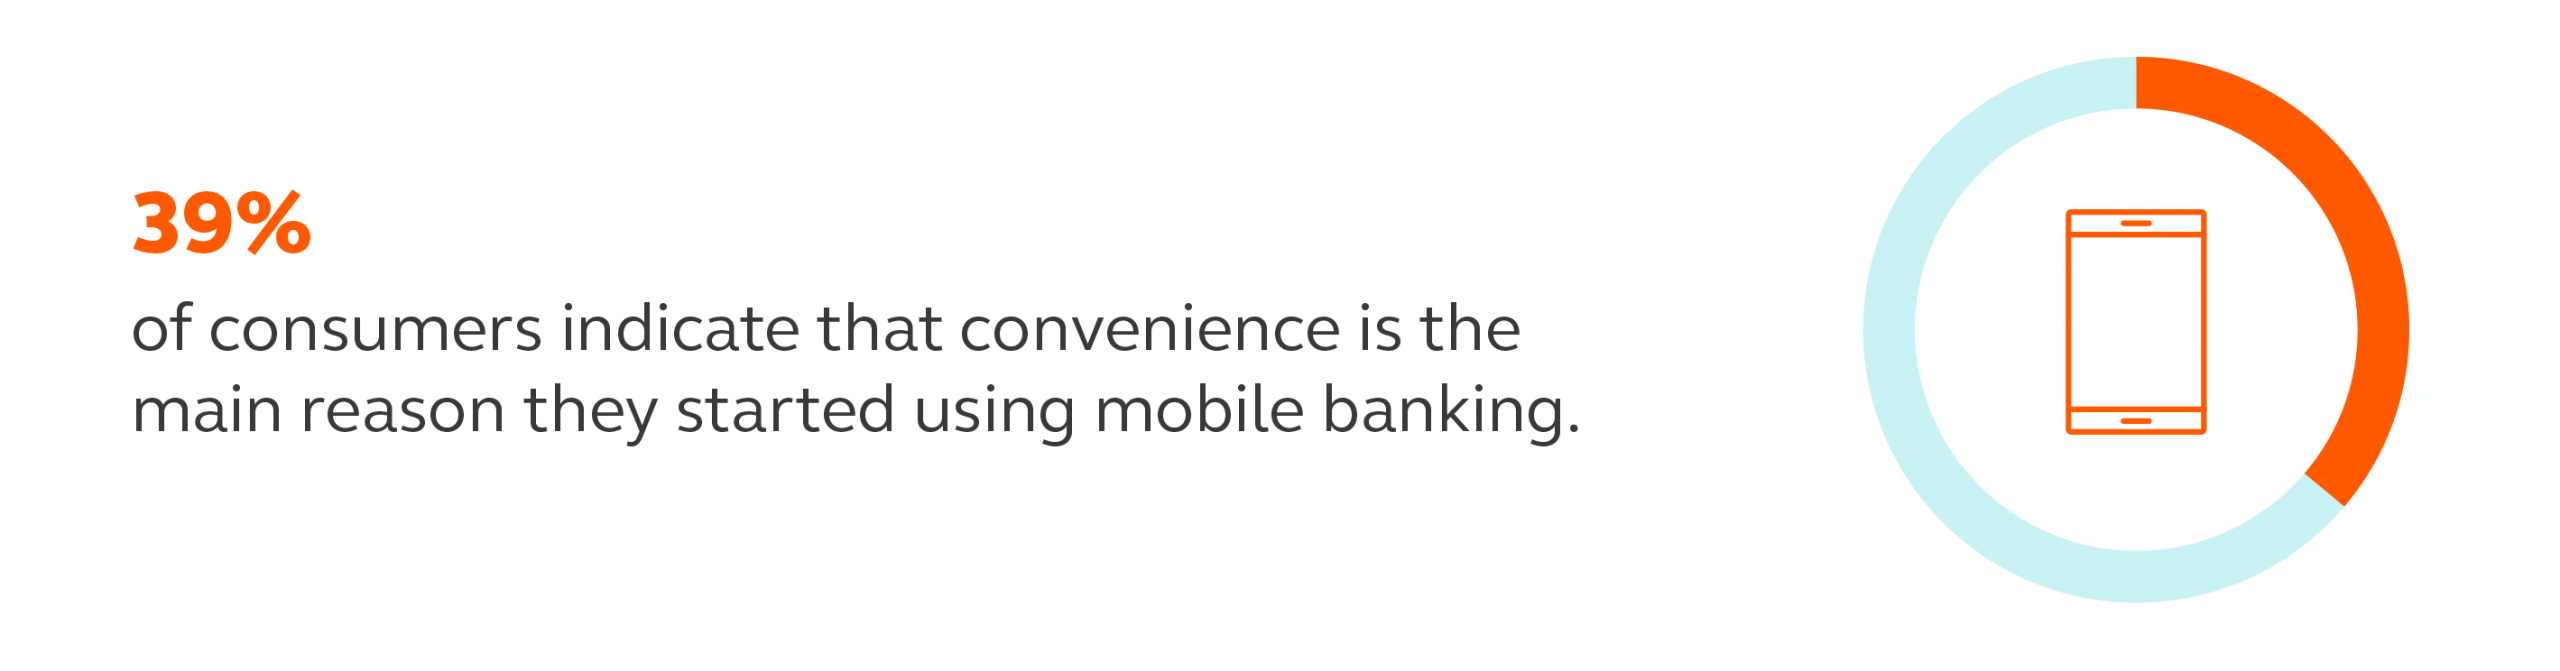 Better-Banking-Infographic-1-01